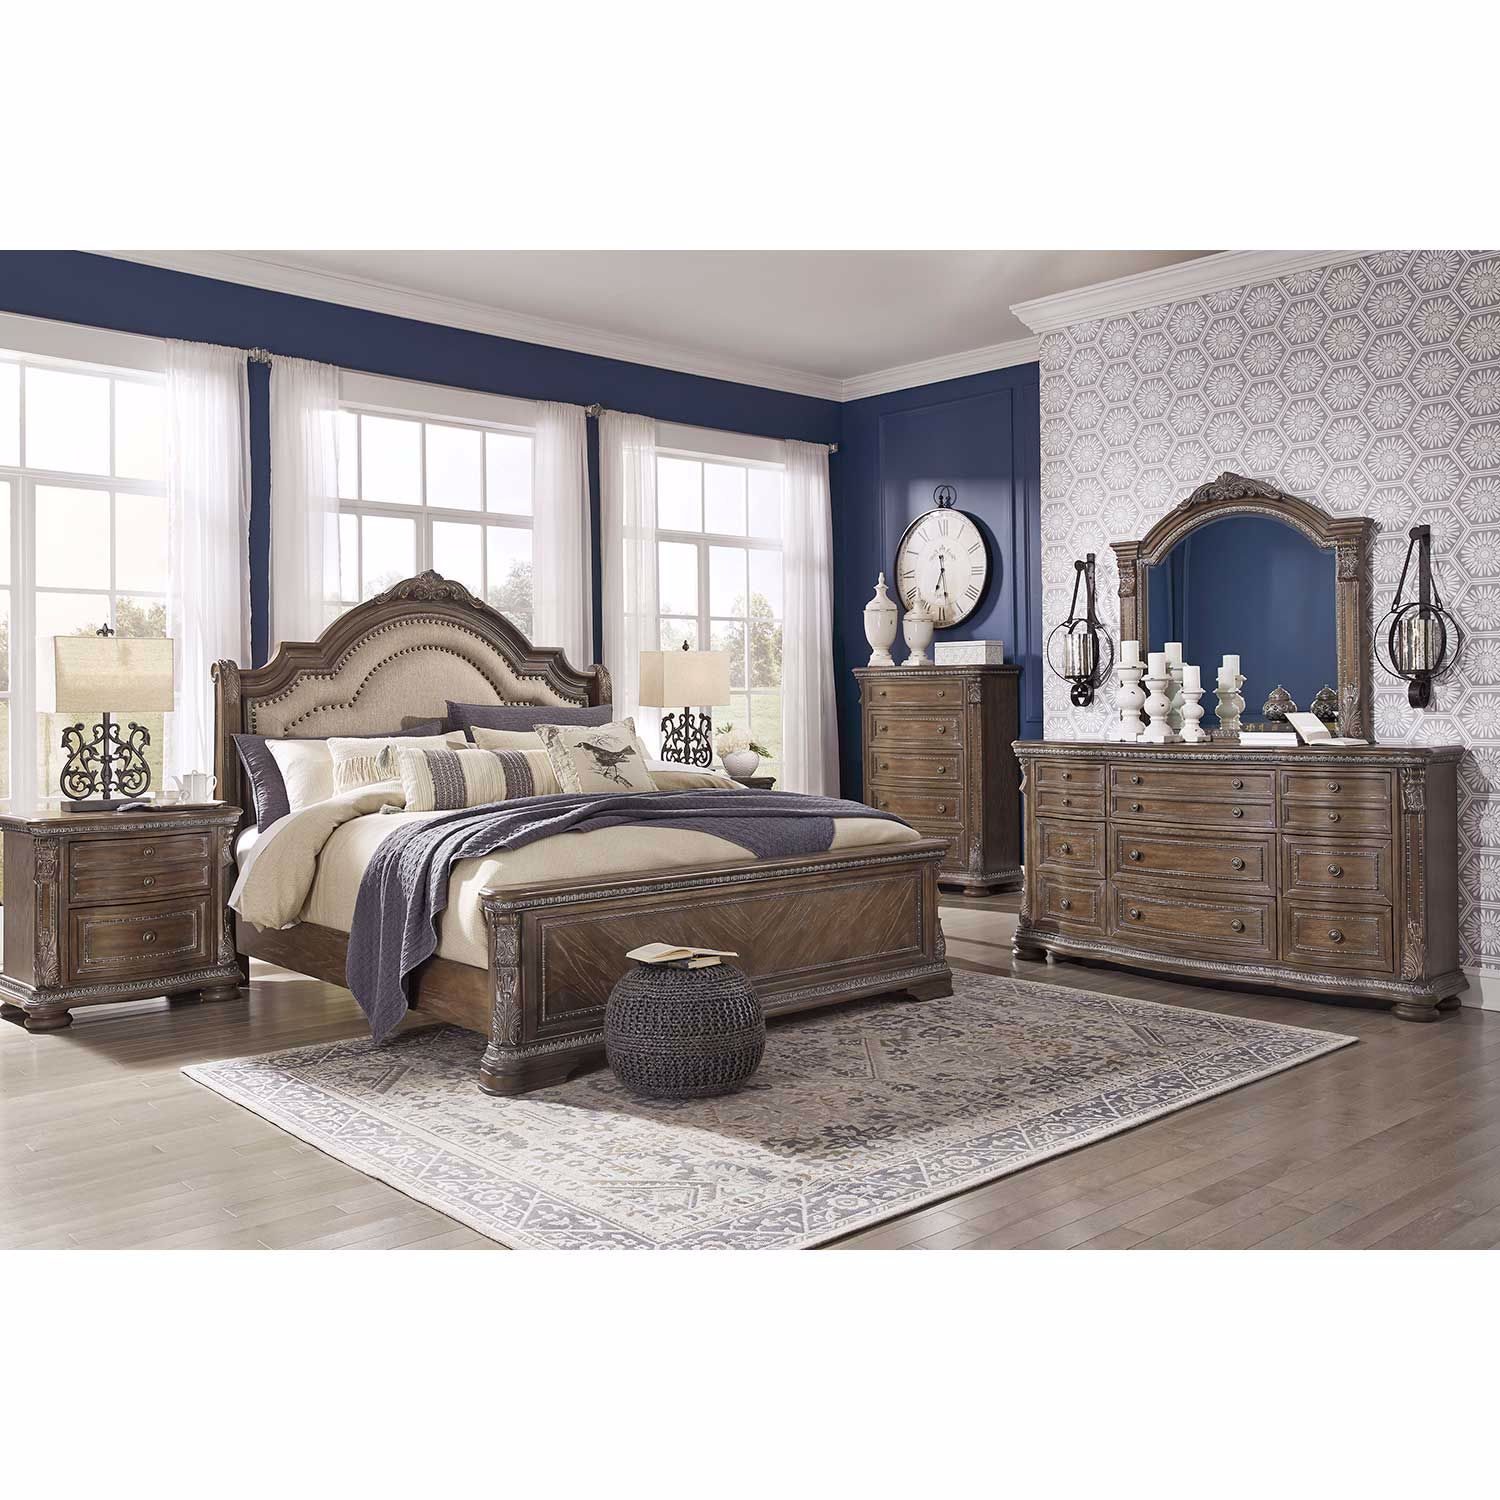 Charmond 5 Piece Bedroom Set